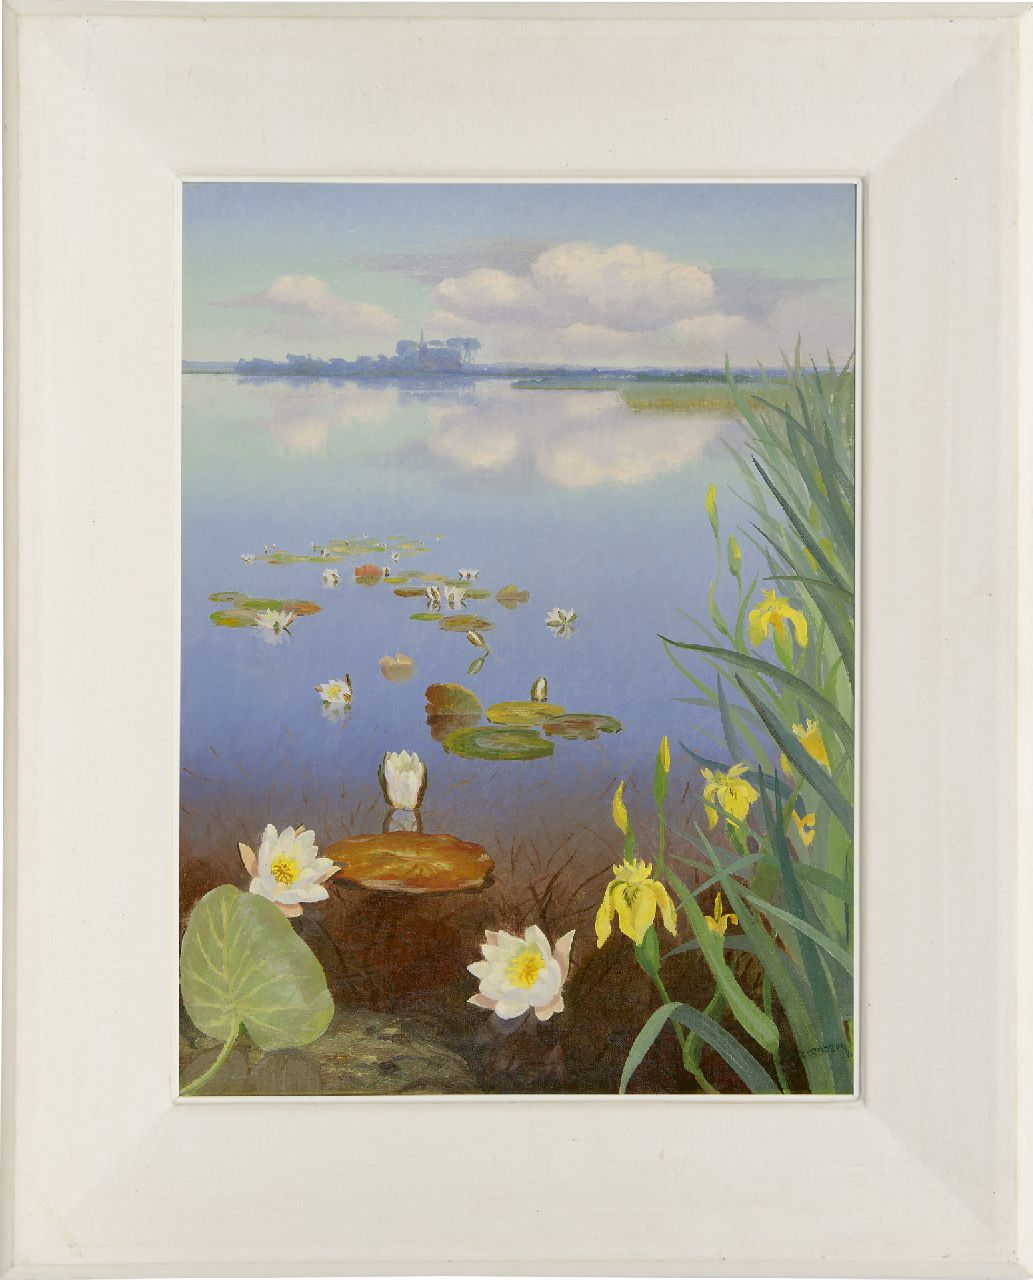 Smorenberg D.  | Dirk Smorenberg | Paintings offered for sale | A view of a lake with water lilies, oil on canvas 60.1 x 45.0 cm, signed l.r. and painted ca. 1930